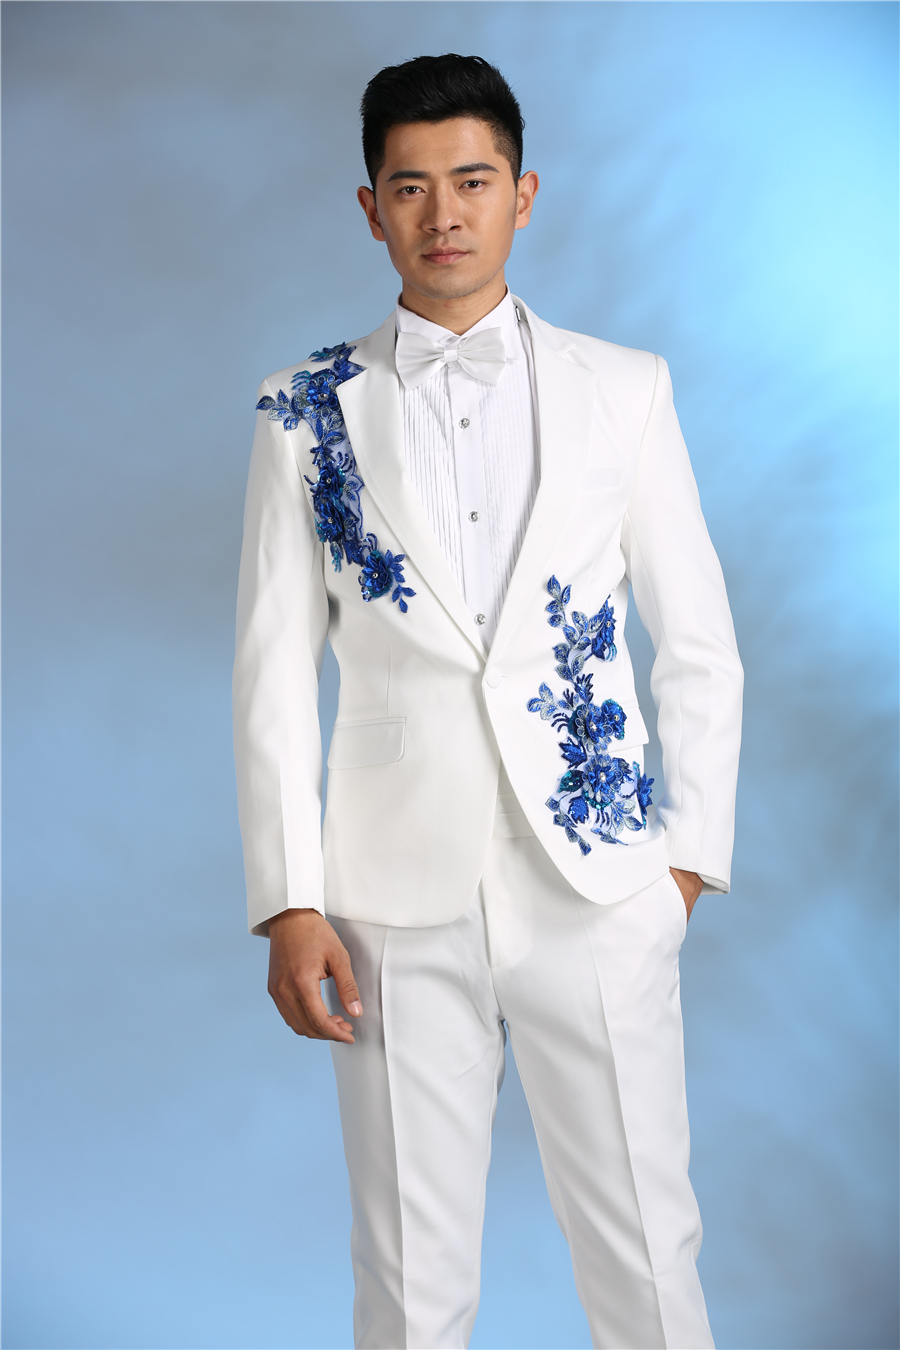 Fantastic Gold Prom Tuxedo Ideas - Wedding Ideas - memiocall.com